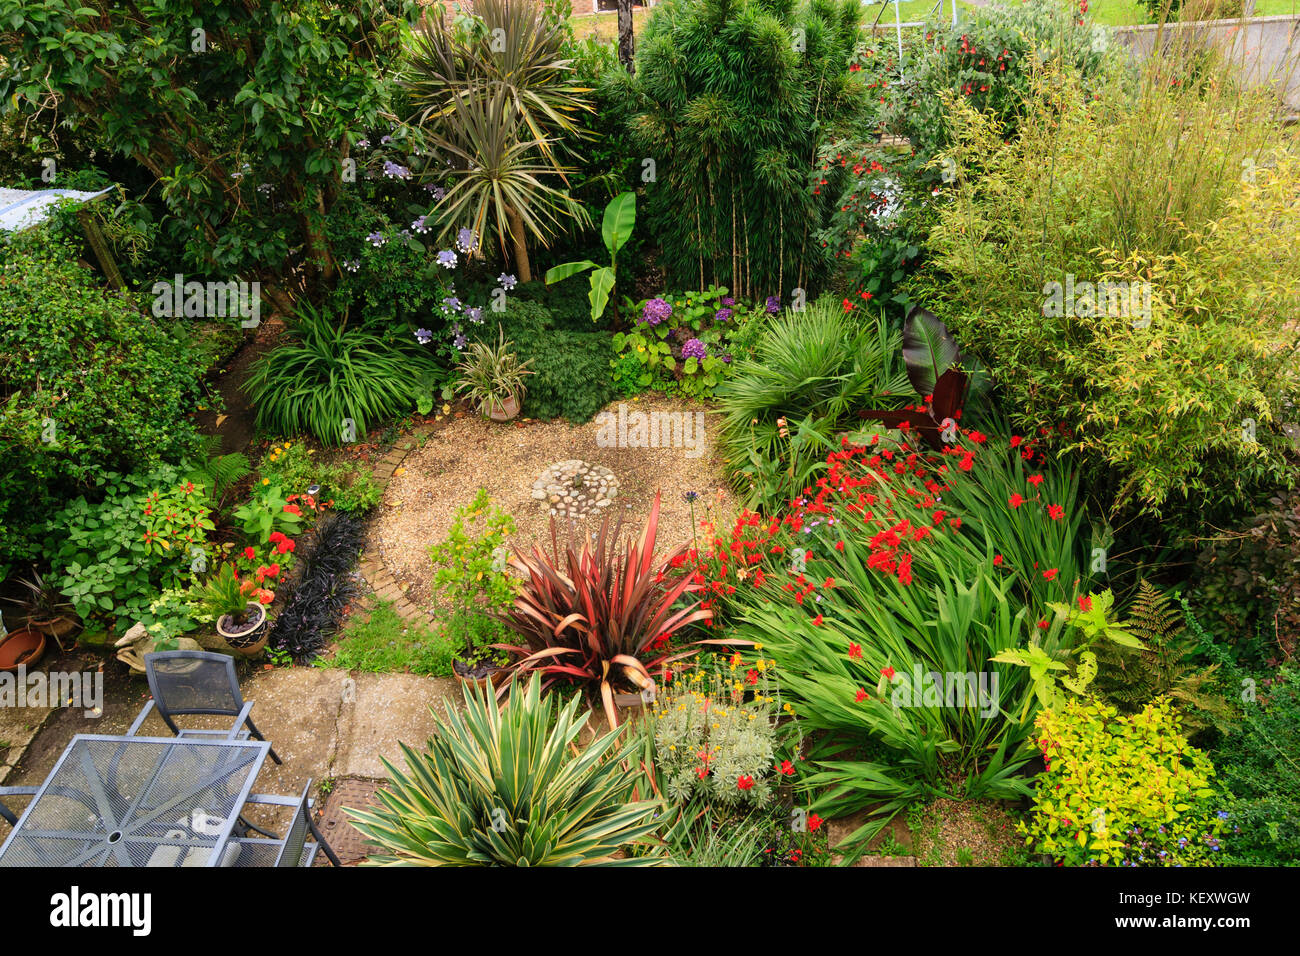 overhead-aerial-view-of-a-small-exotic-garden-in-plymouth-devon-uk-KEXWGW.jpg